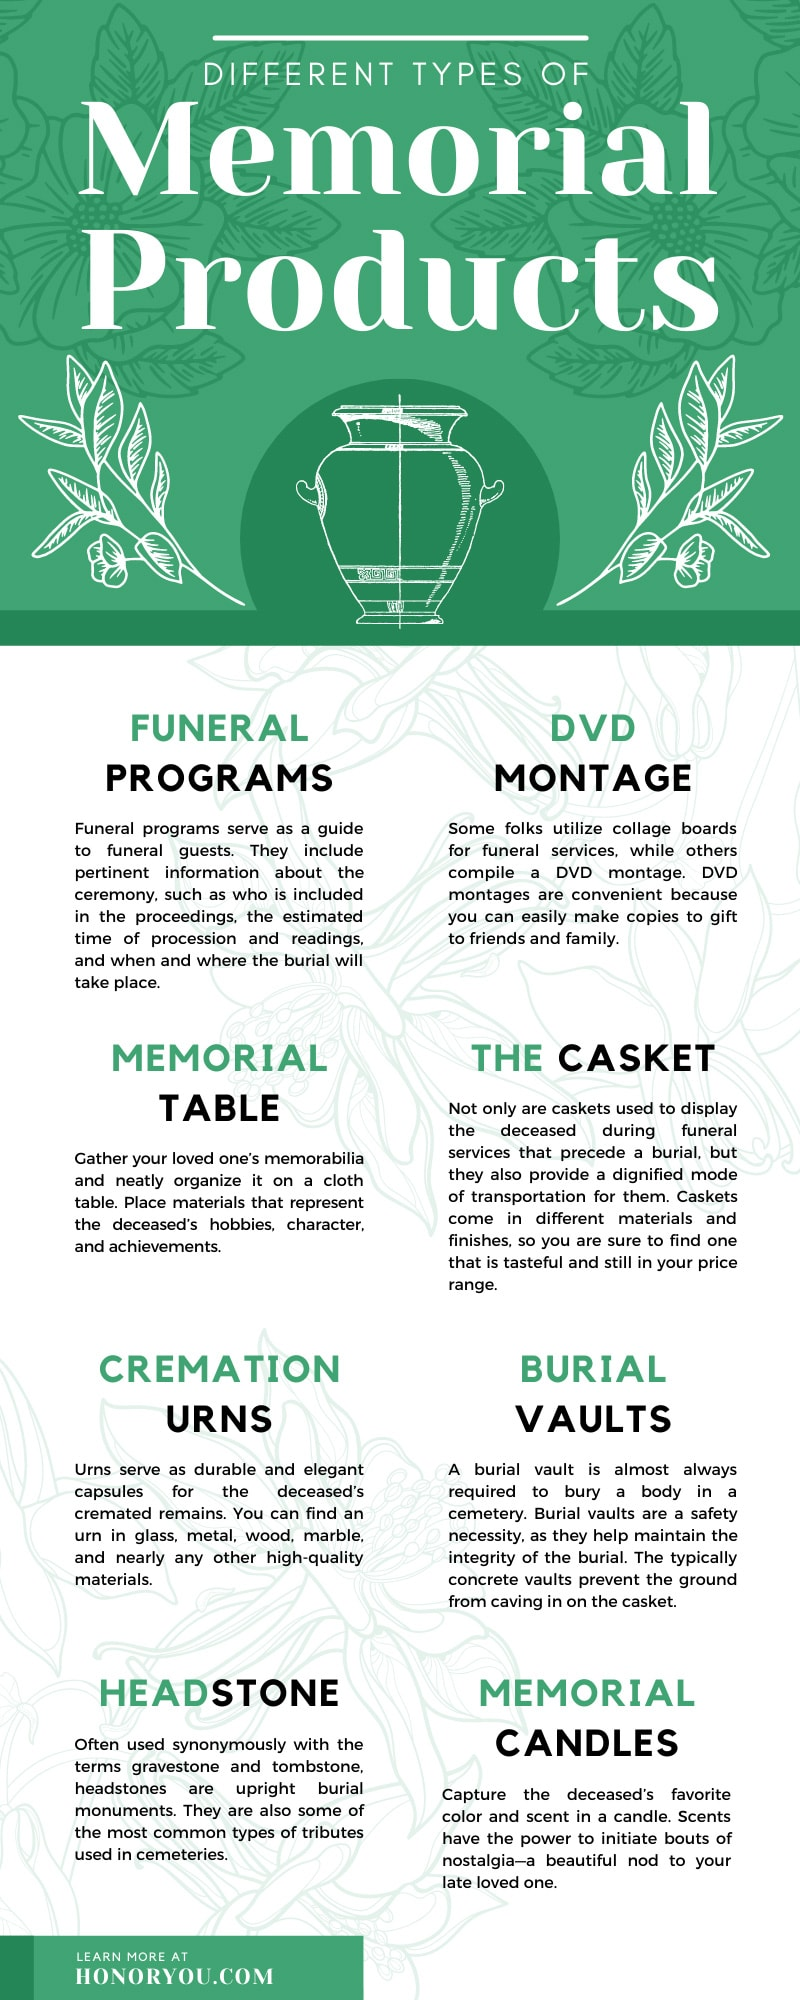 Different Types of Memorial Products